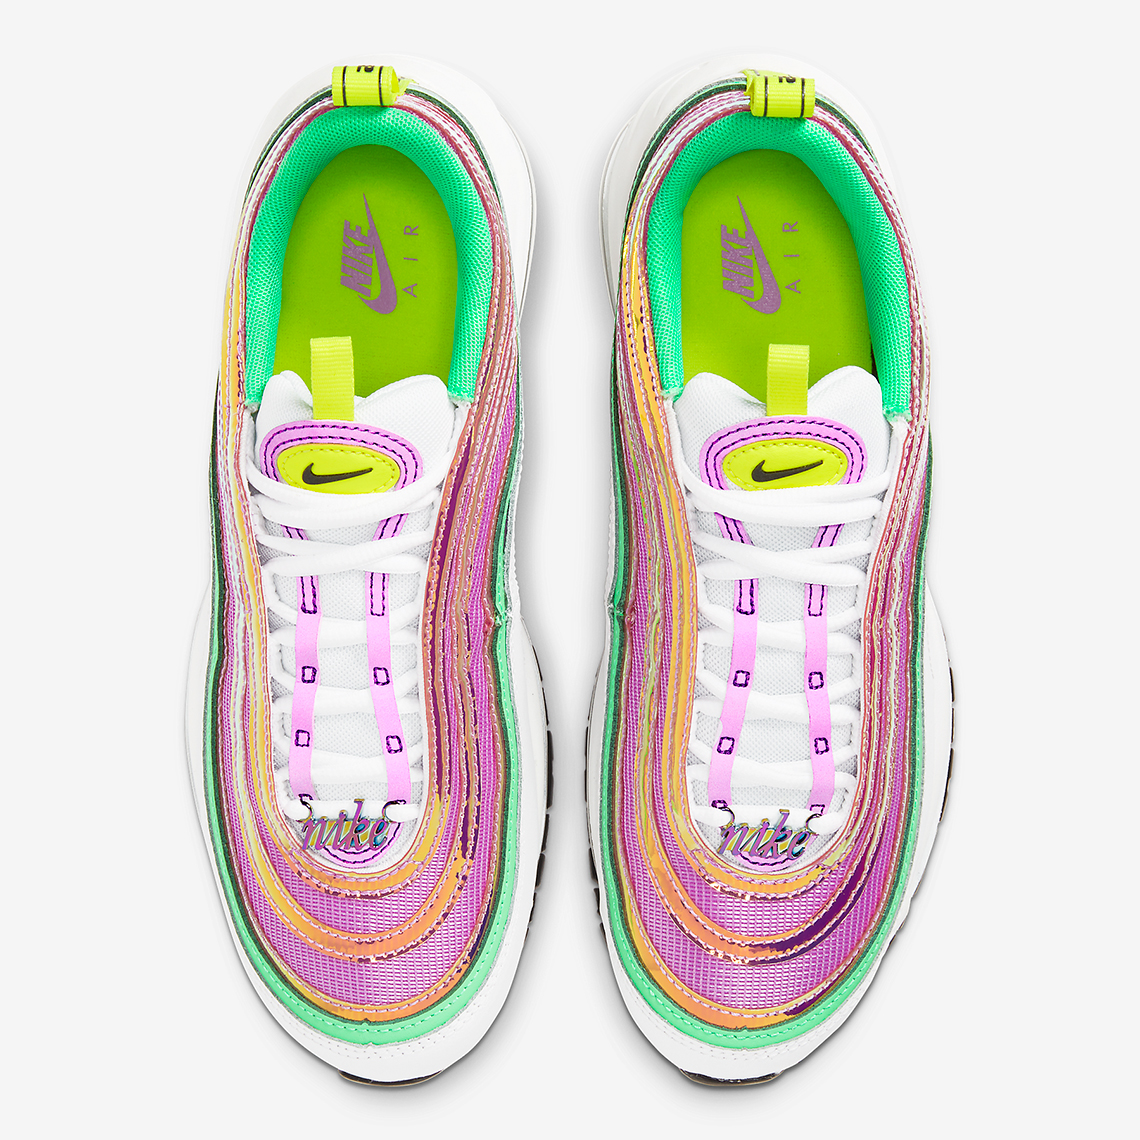 Nike Air Max 97 Pink Green CW5591 100 Release Info